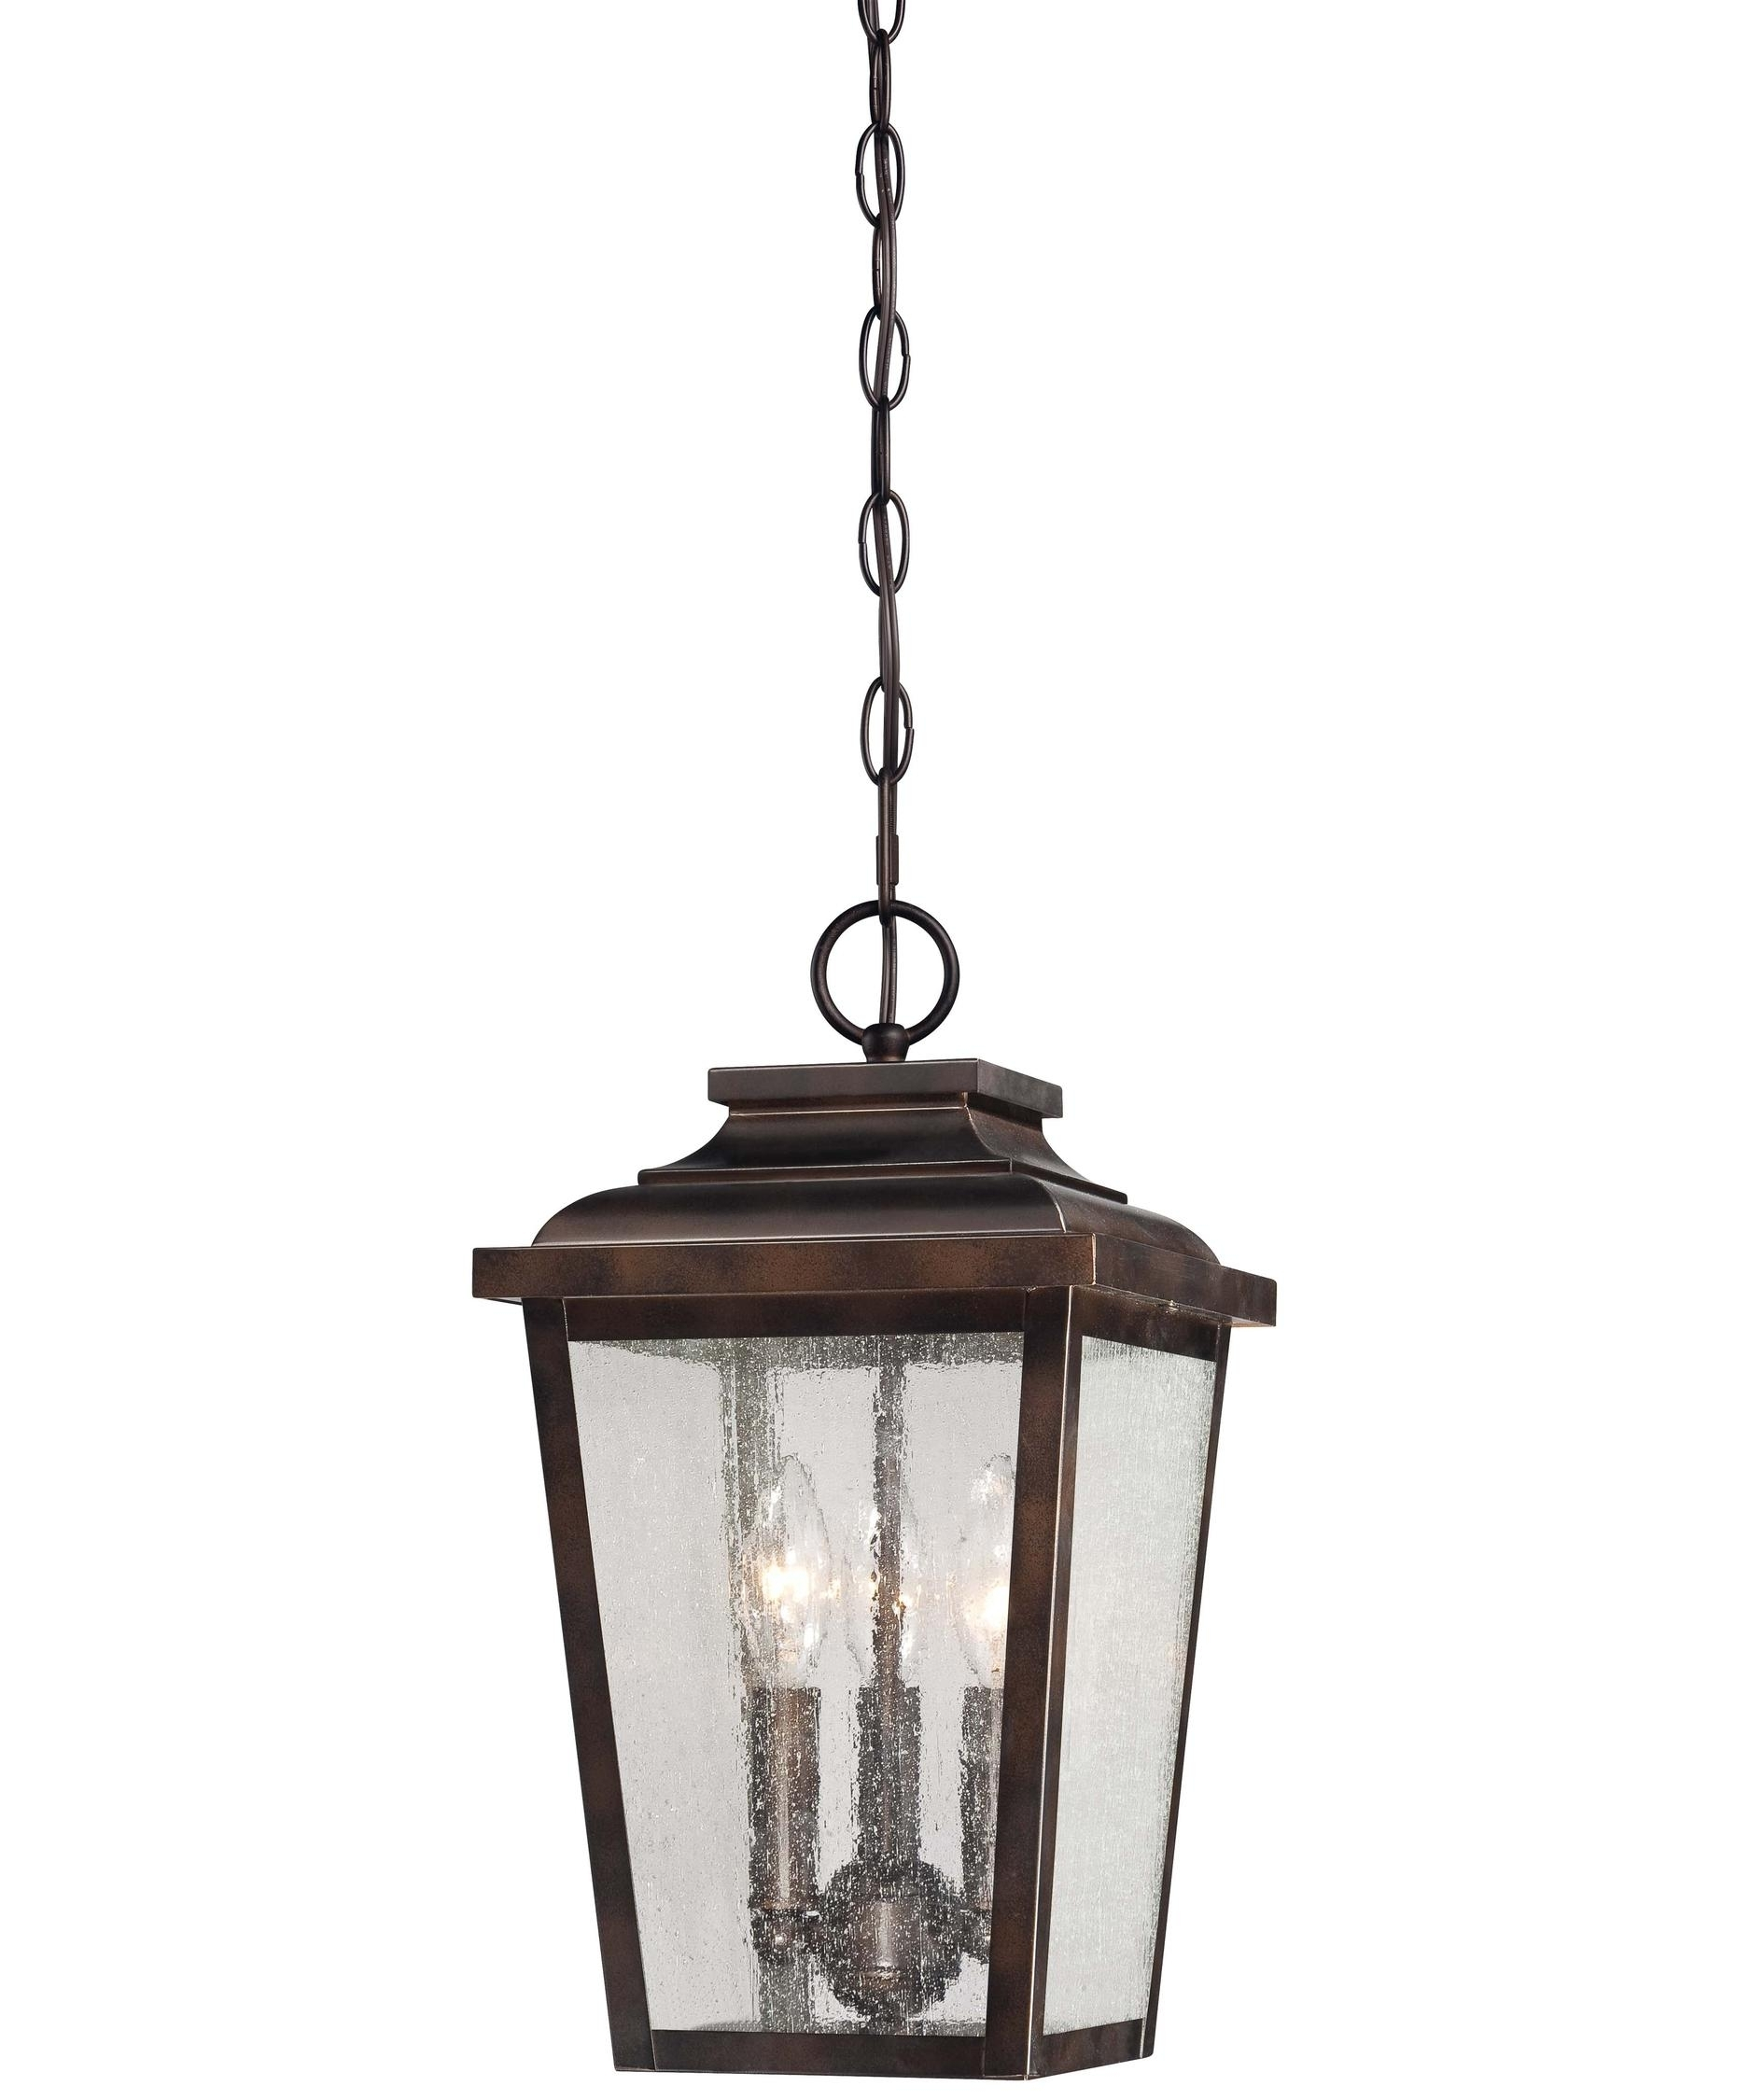 Best Exterior Pendant Light Photos Interior Design Ideas Regarding Intended For Vintage Outdoor Hanging Lights (#2 of 15)